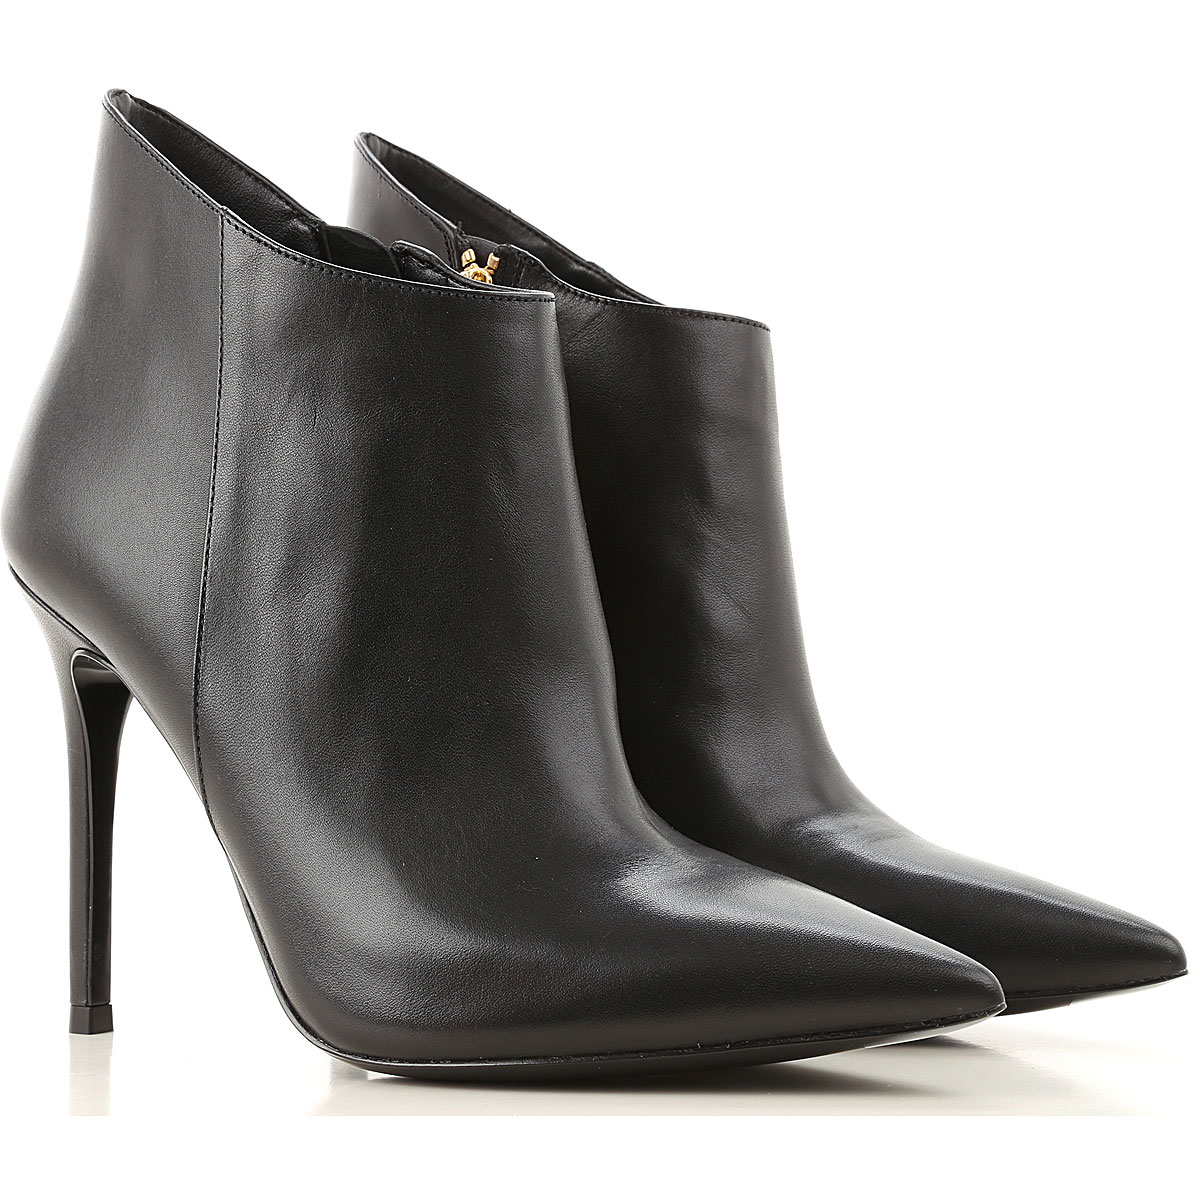 Michael Kors Boots for Women, Booties On Sale, Black, Leather, 2019, 6 6.5 7 8 8.5 9 9.5